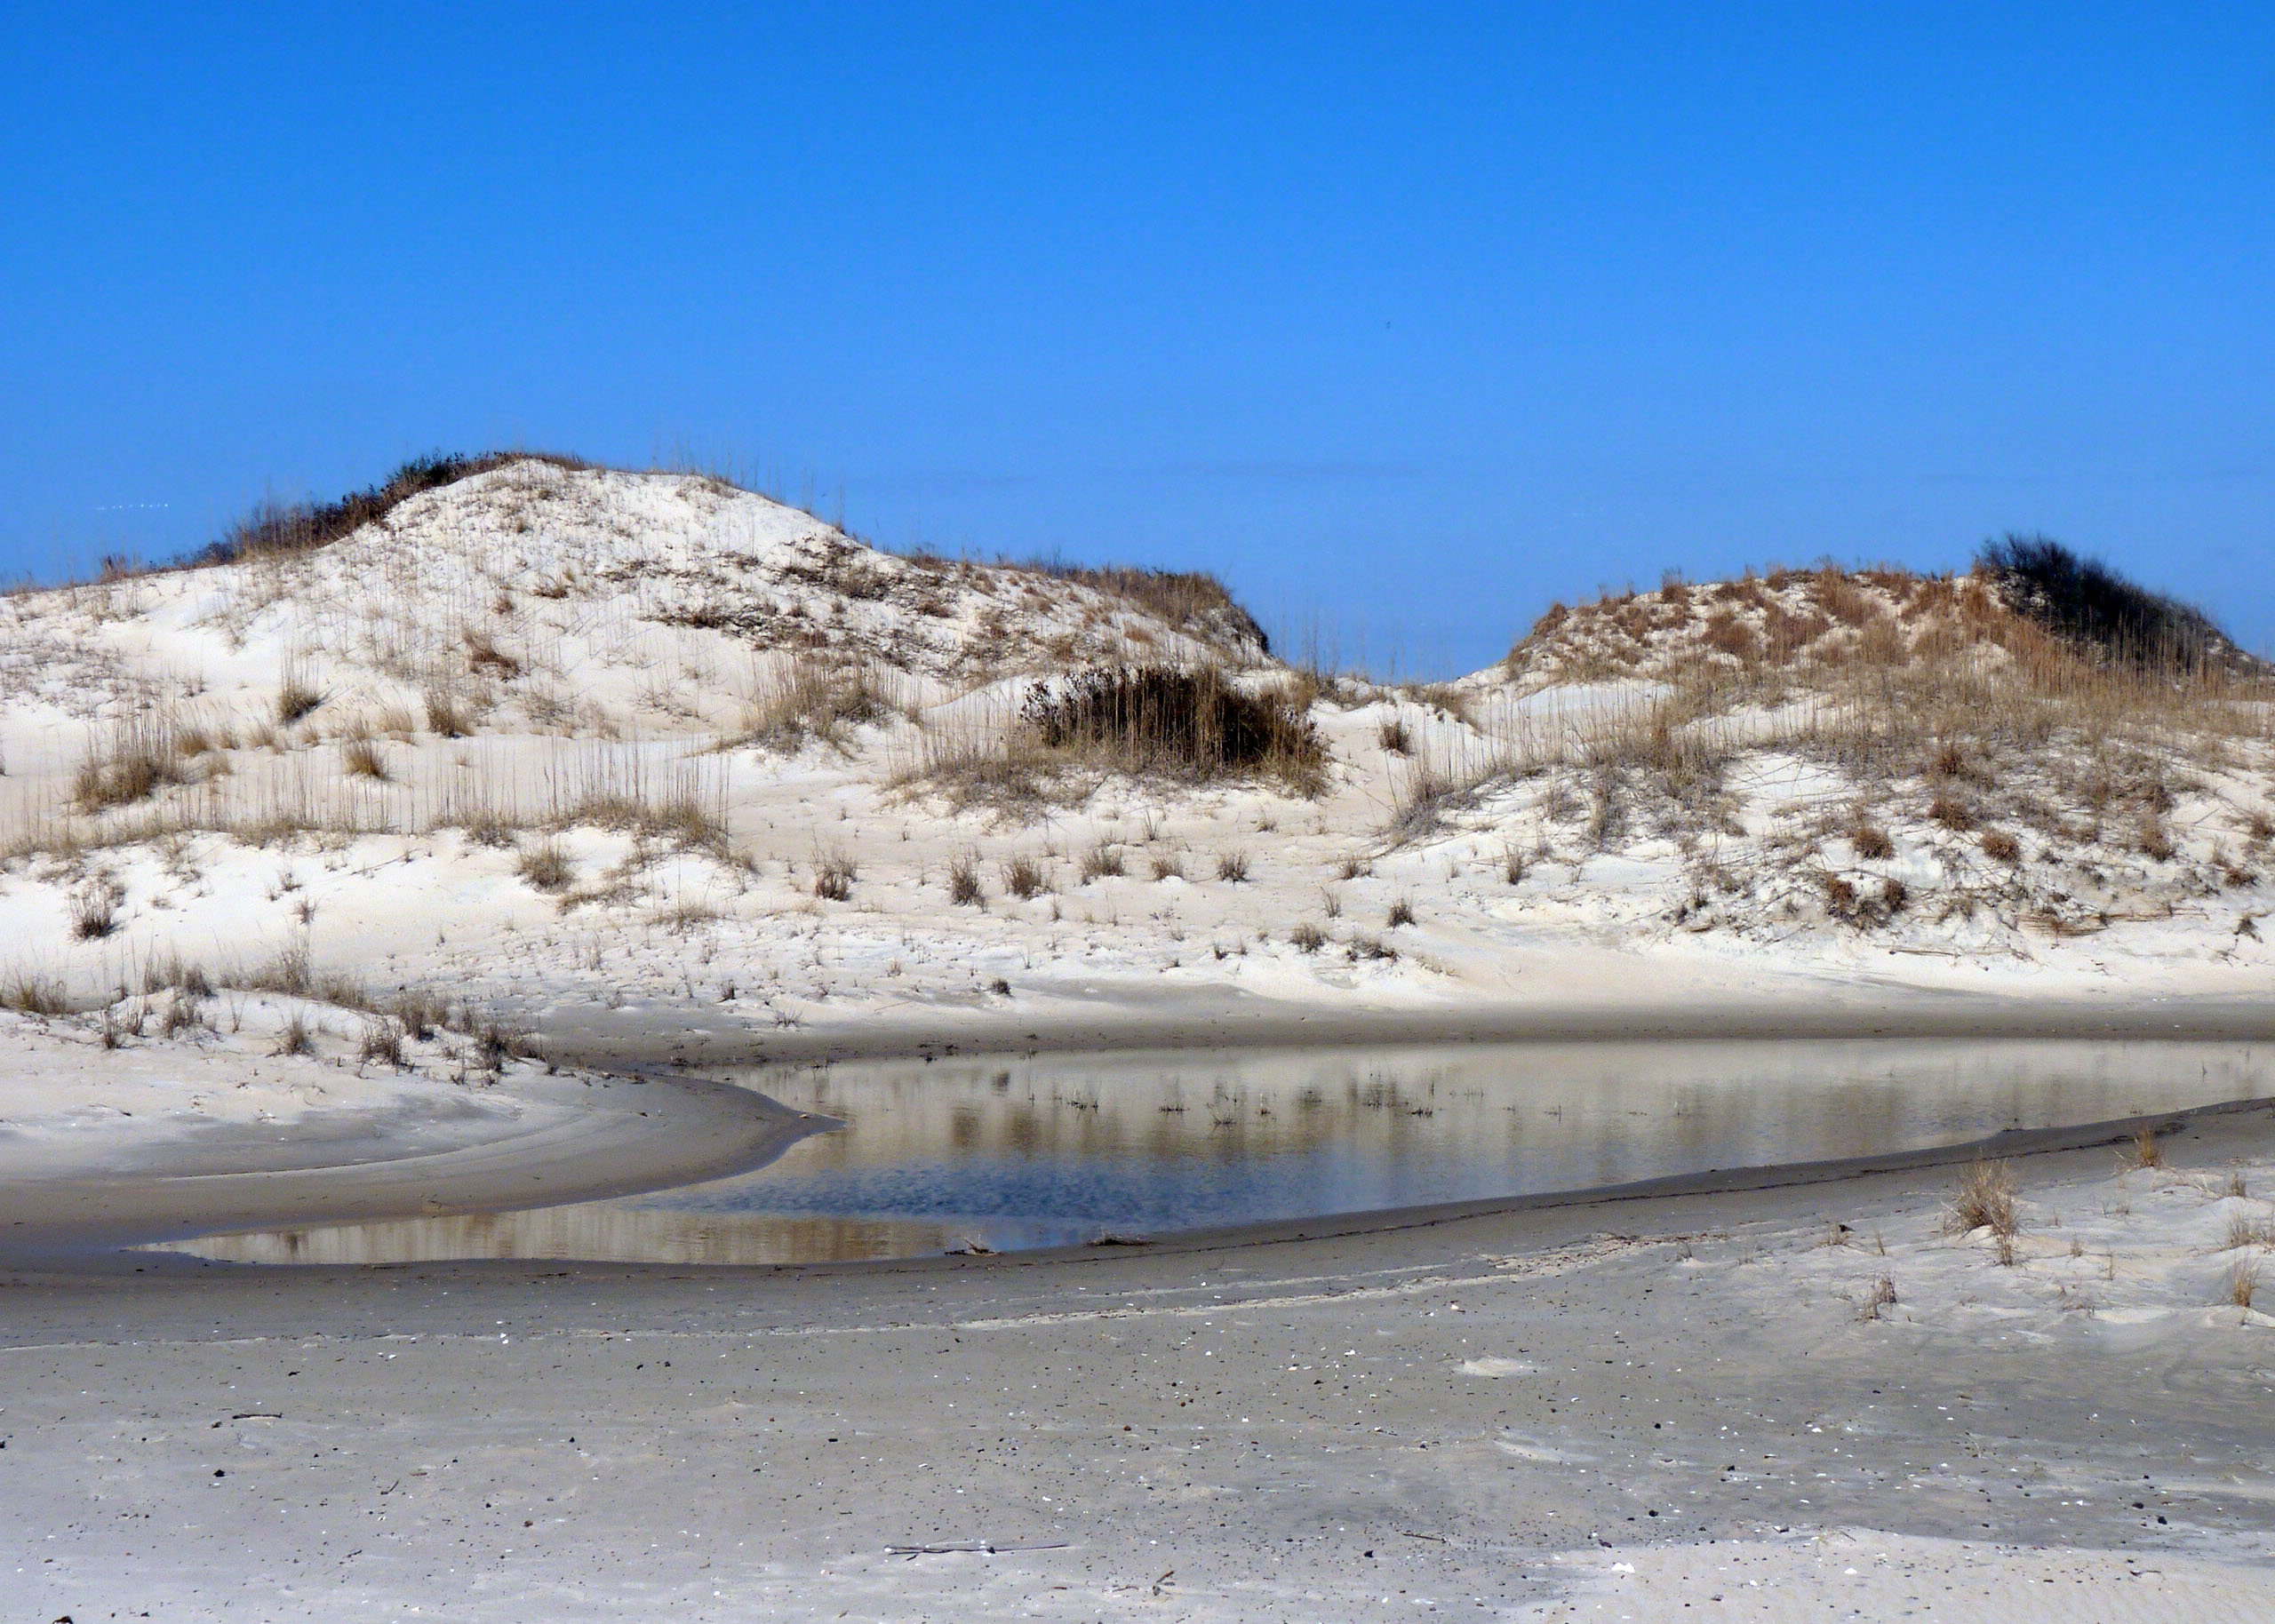 Dunes At False Cape State Park In Virginia Beach Are Common Features Along The